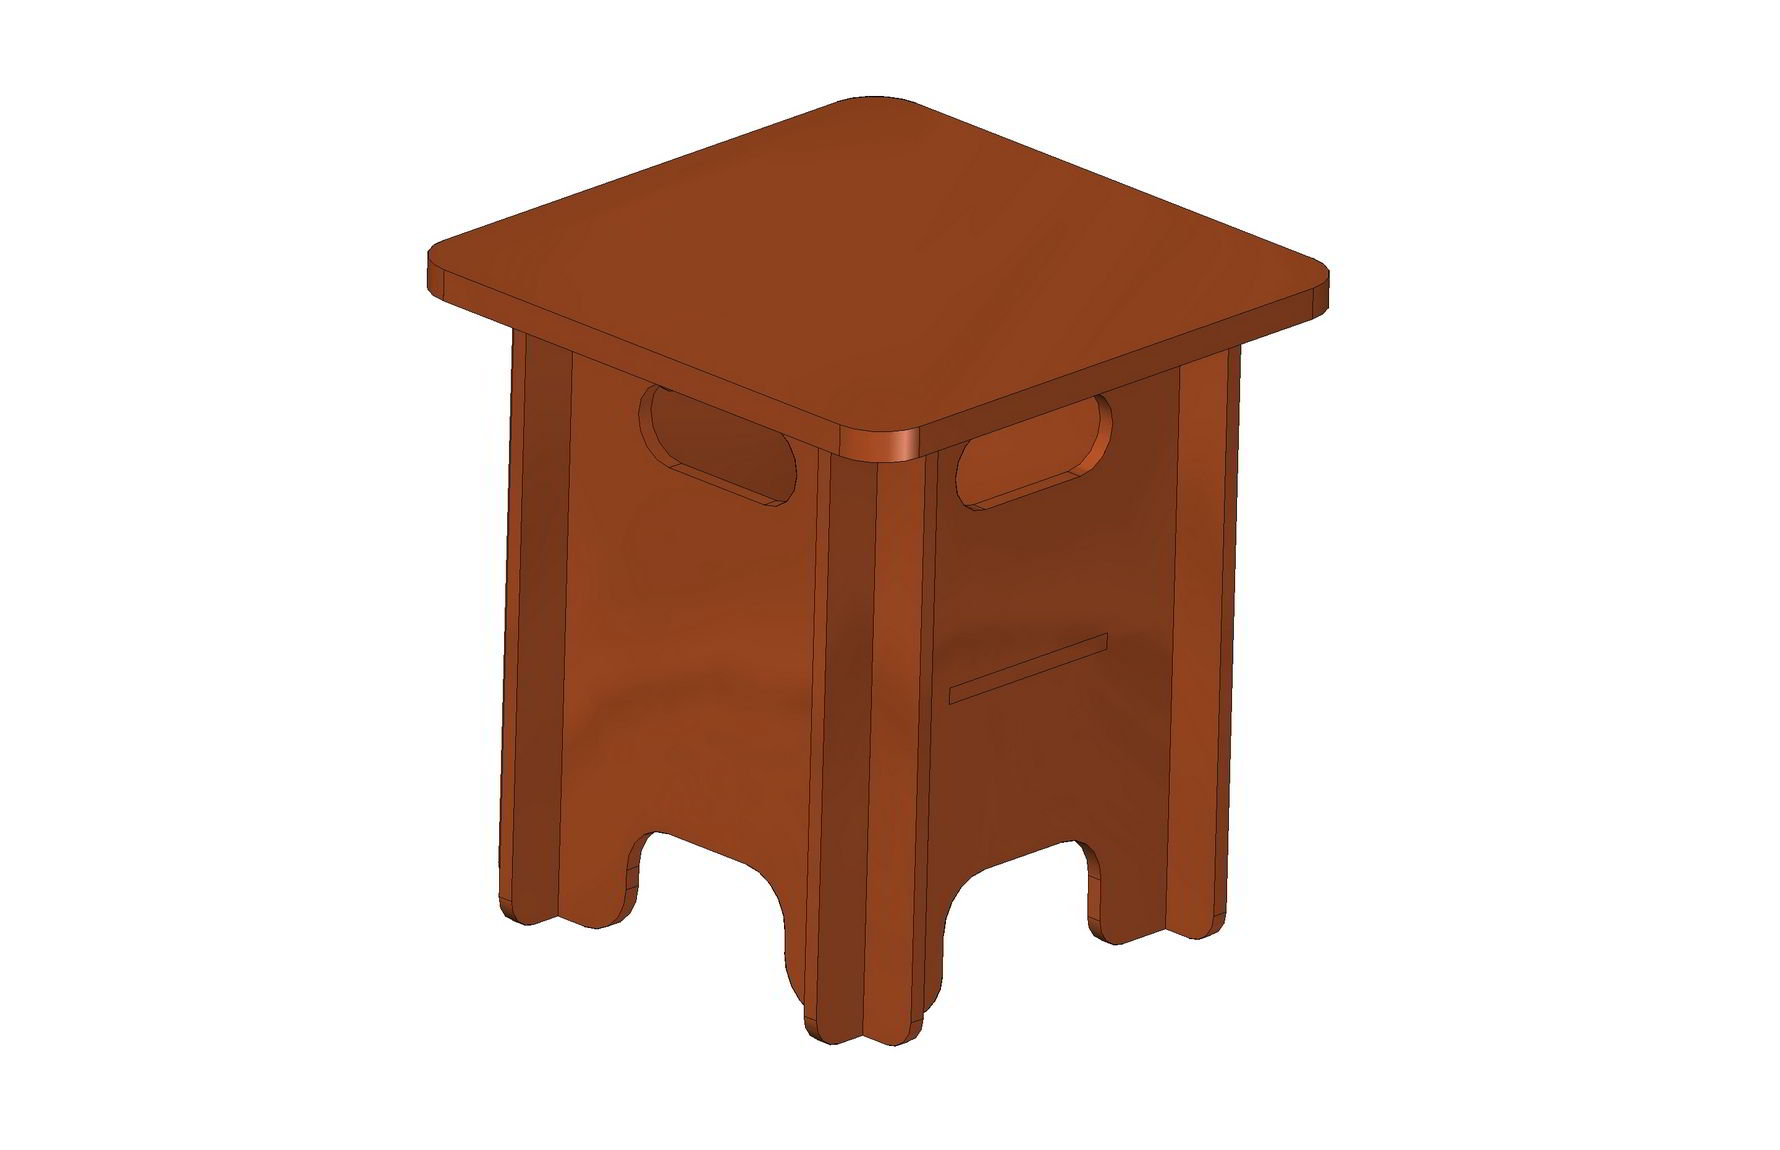 Collapsible Stool With Storage Compartment Plan